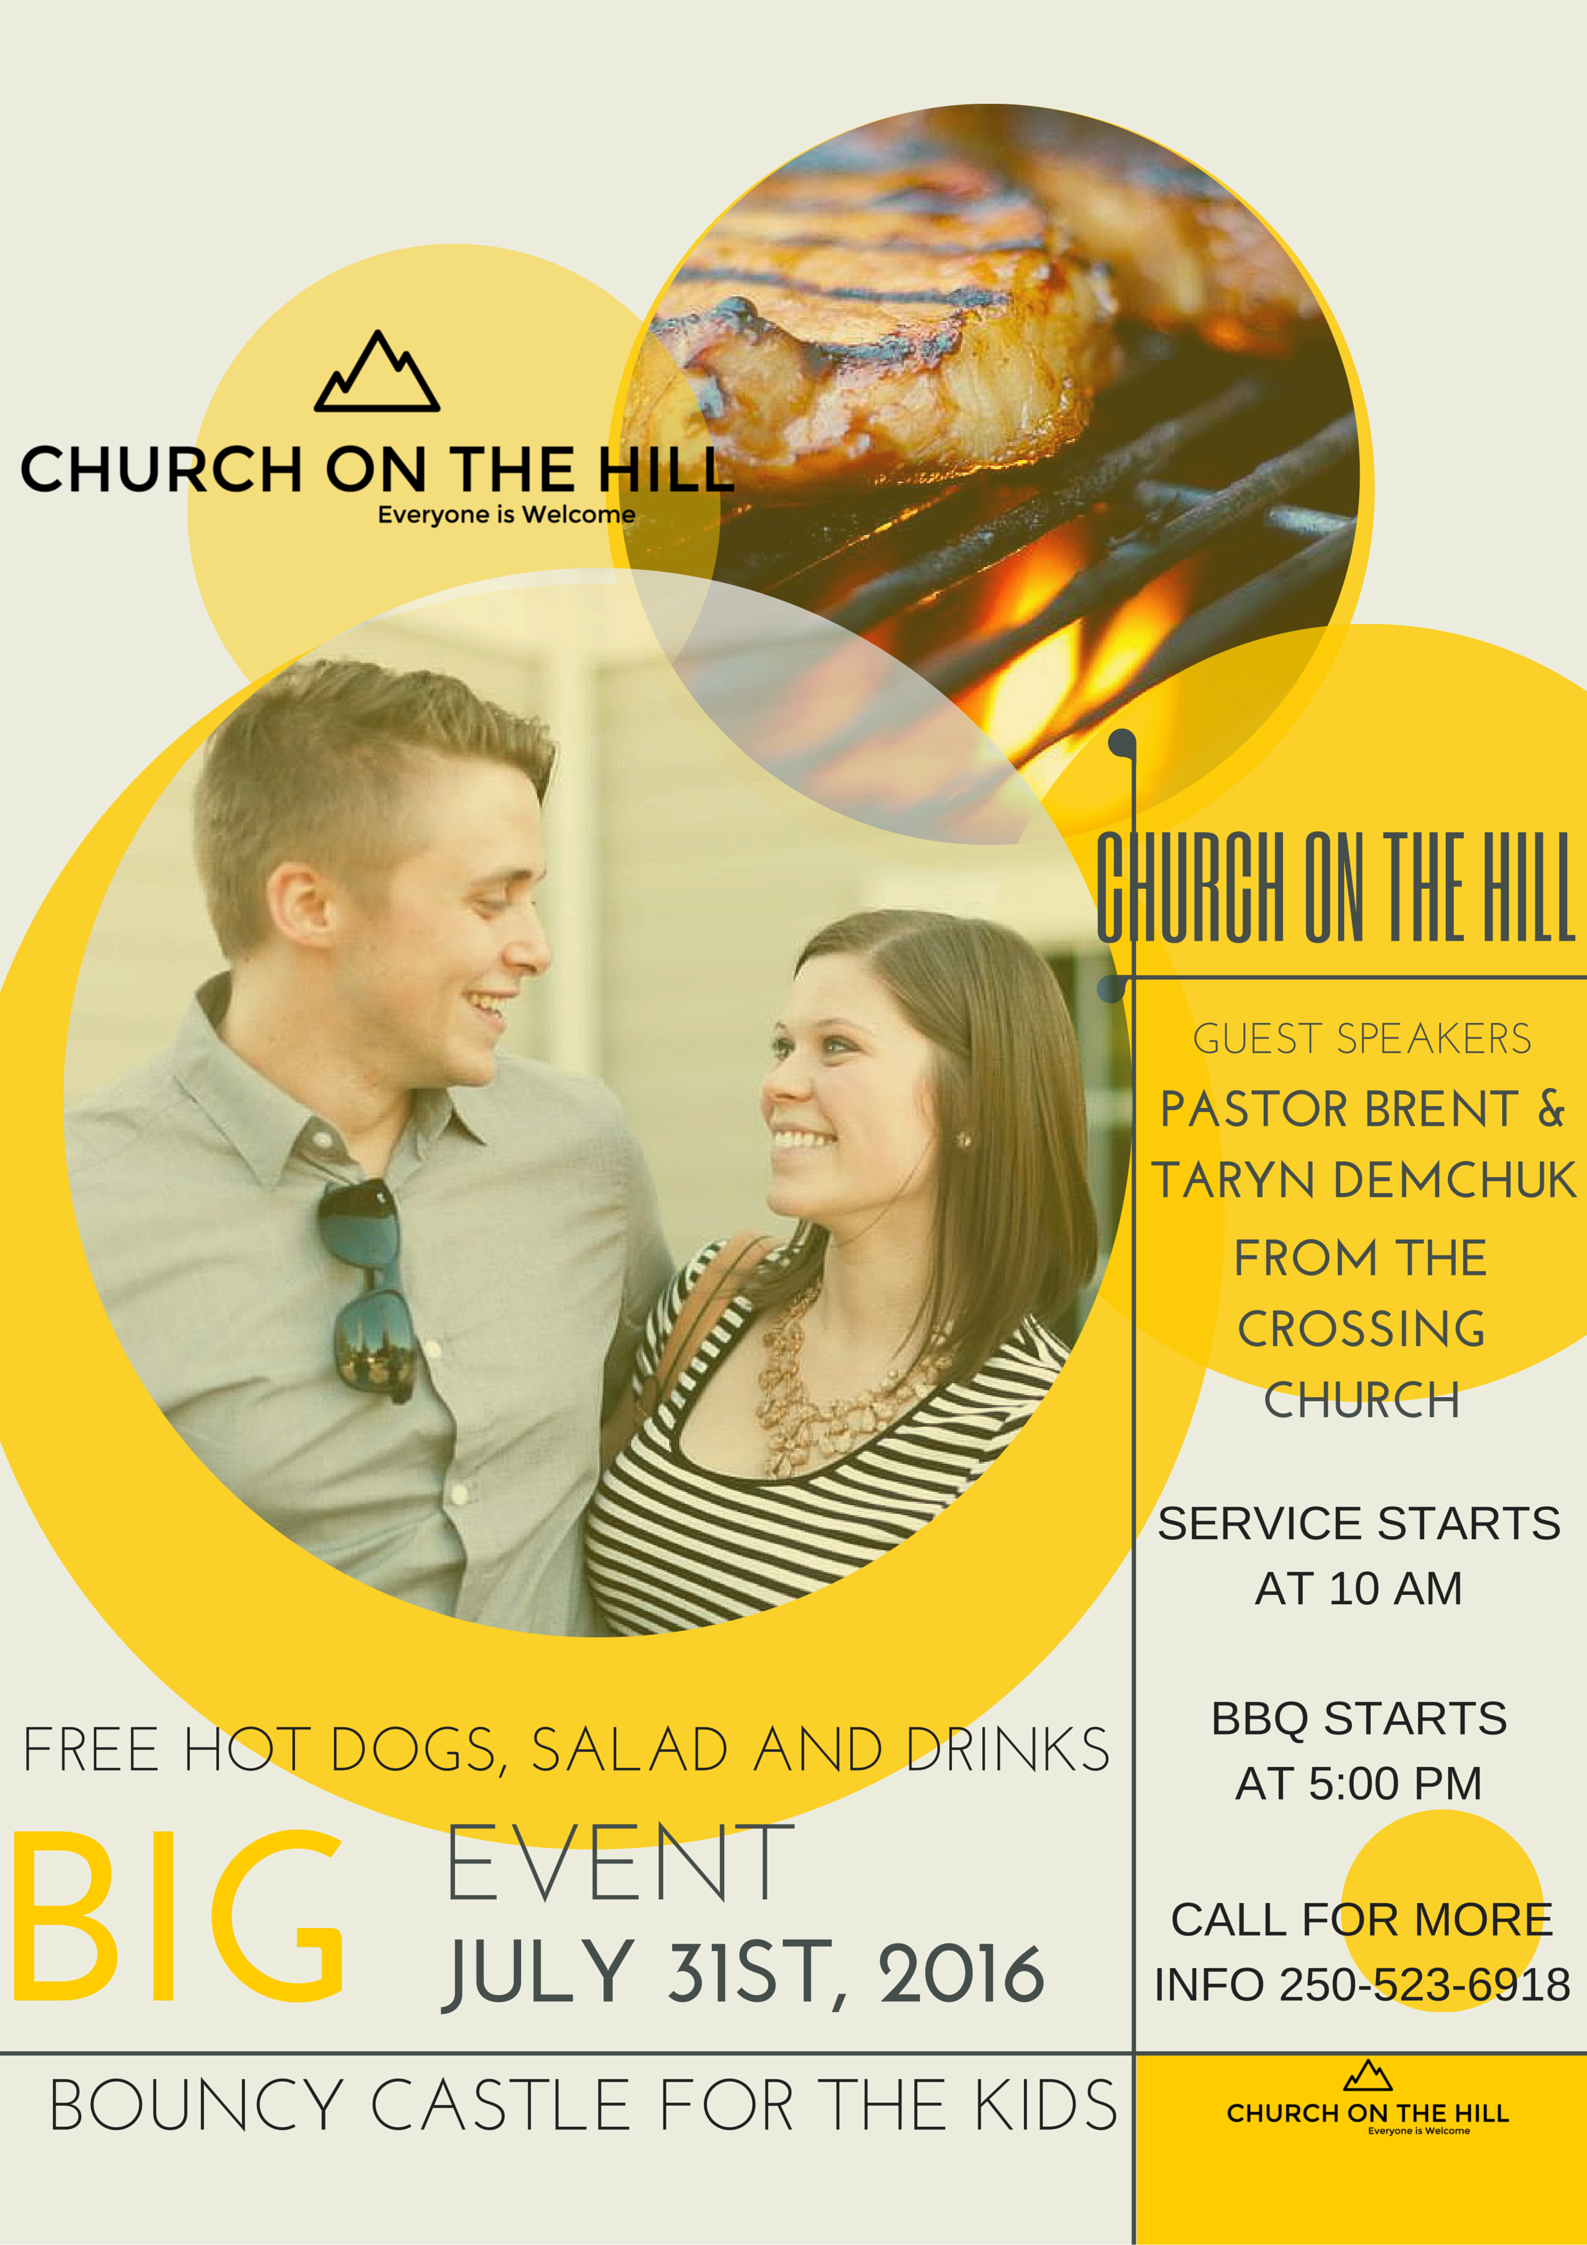 Hey guys we are having our first open house for Logan Lakers here at Church on the Hill. We are having our friends from the brand new Church Plant the Crossing church from the White Rock area. They are excited to see community come together in Jesus. Music will be provided at the service and then in the evening starting at 5 Pm at the church we have hot dogs, popcorn, salad and great times ahead. We would love to see you there.